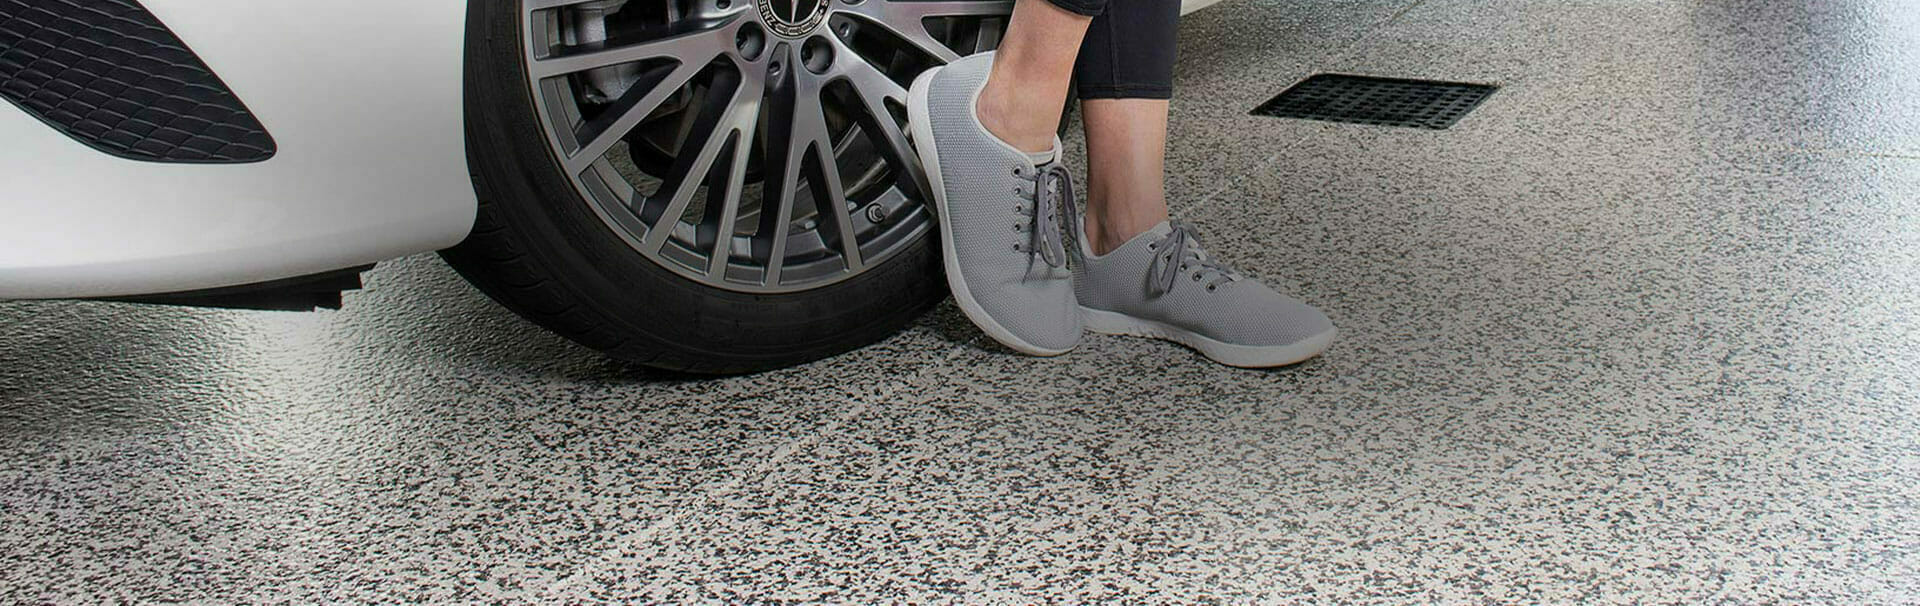 A person in tennis shoes standing next to a car on a polyaspartic floor | Polyaspartic vs epoxy